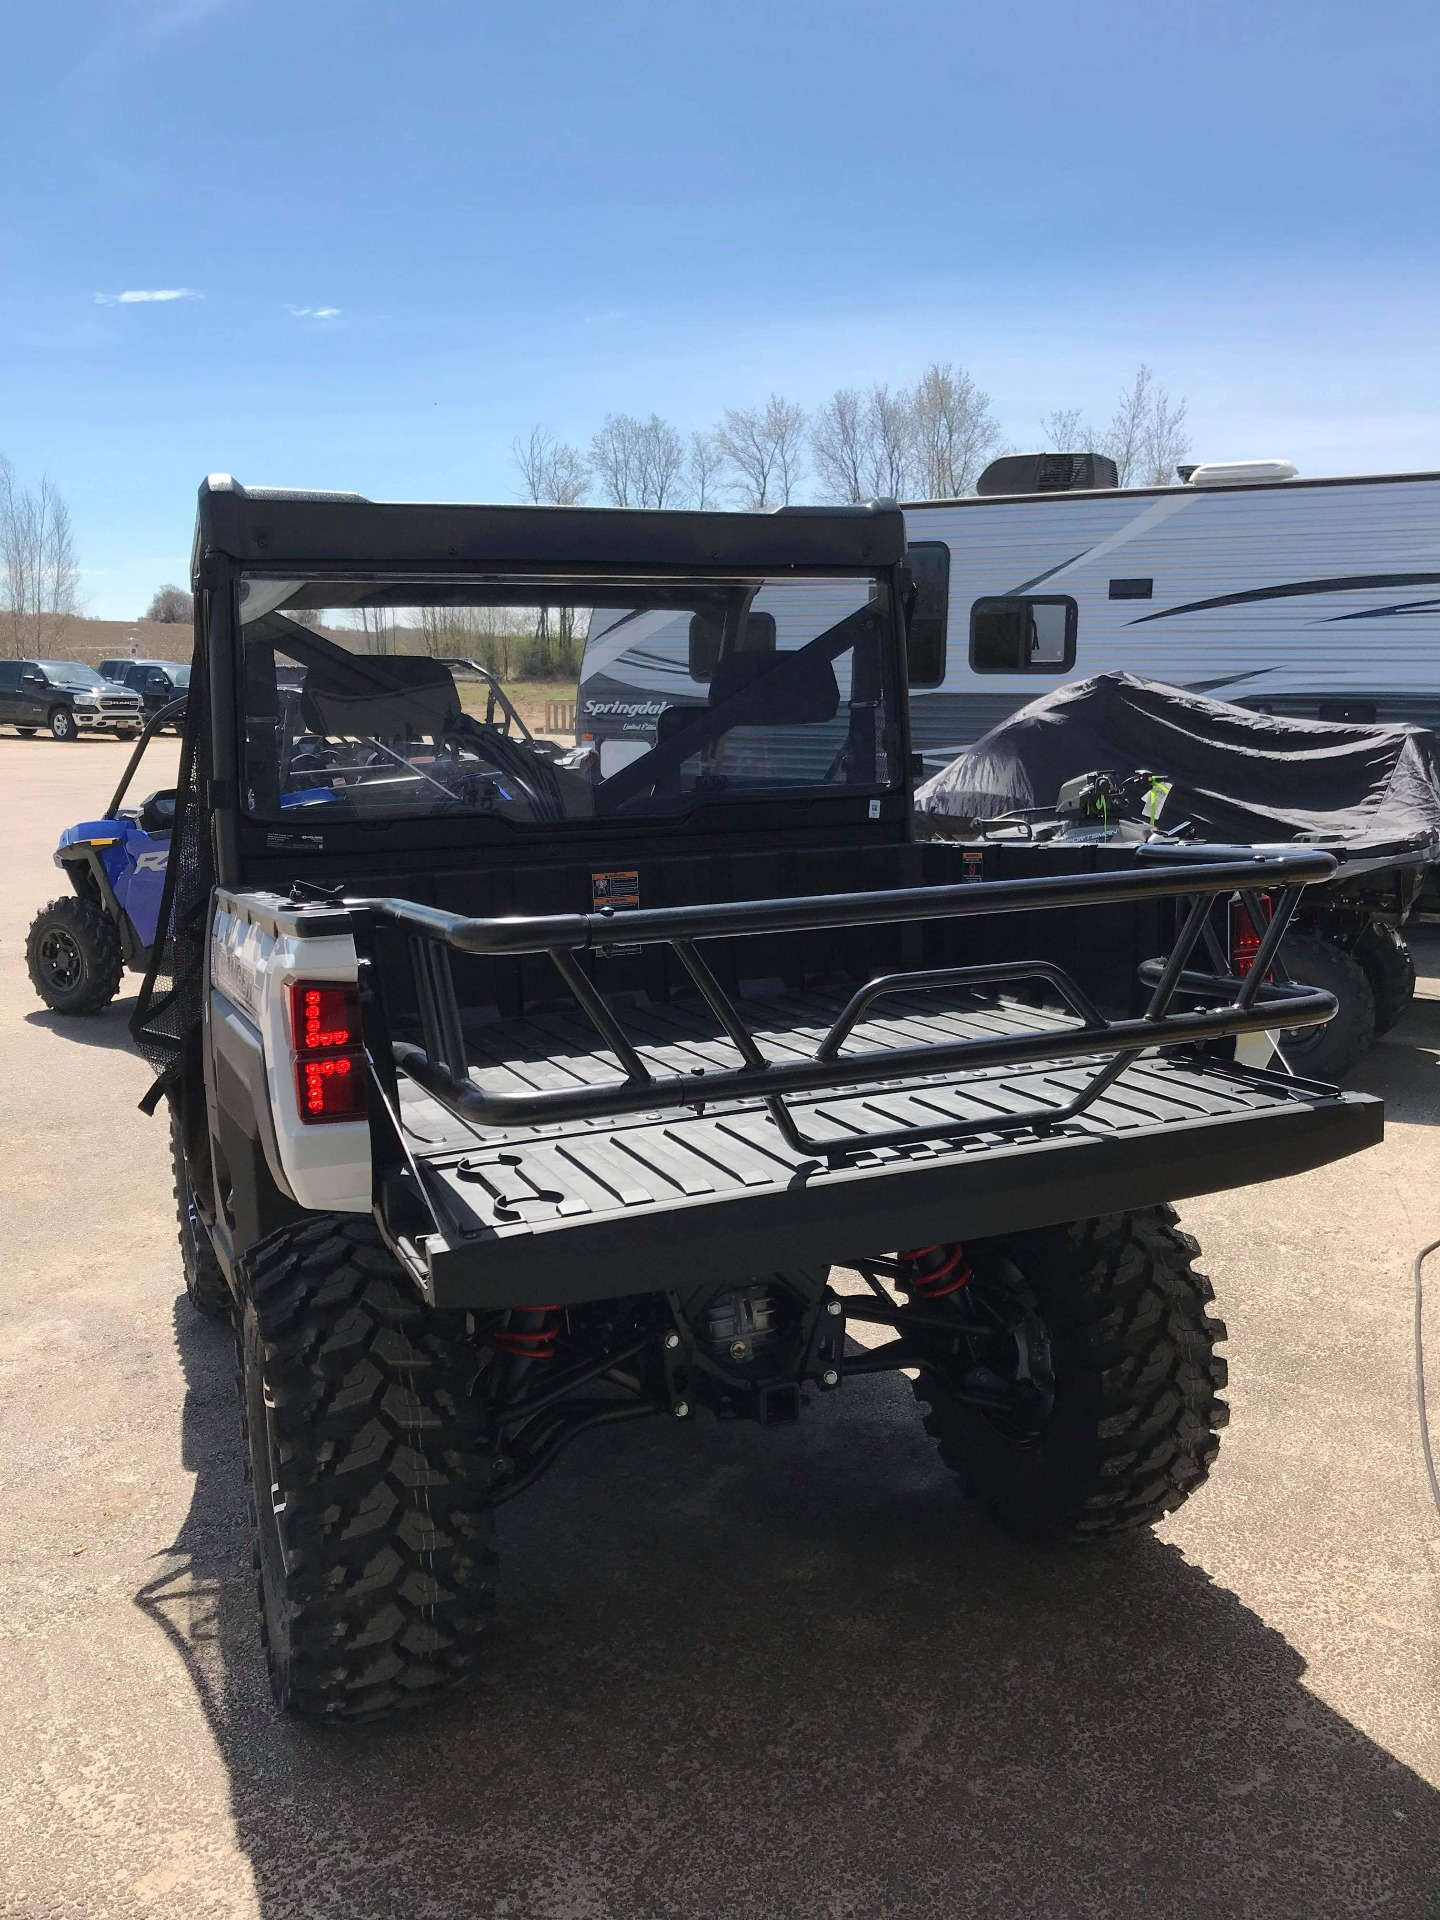 2021 Polaris Ranger XP 1000 Trail Boss in Malone, New York - Photo 3